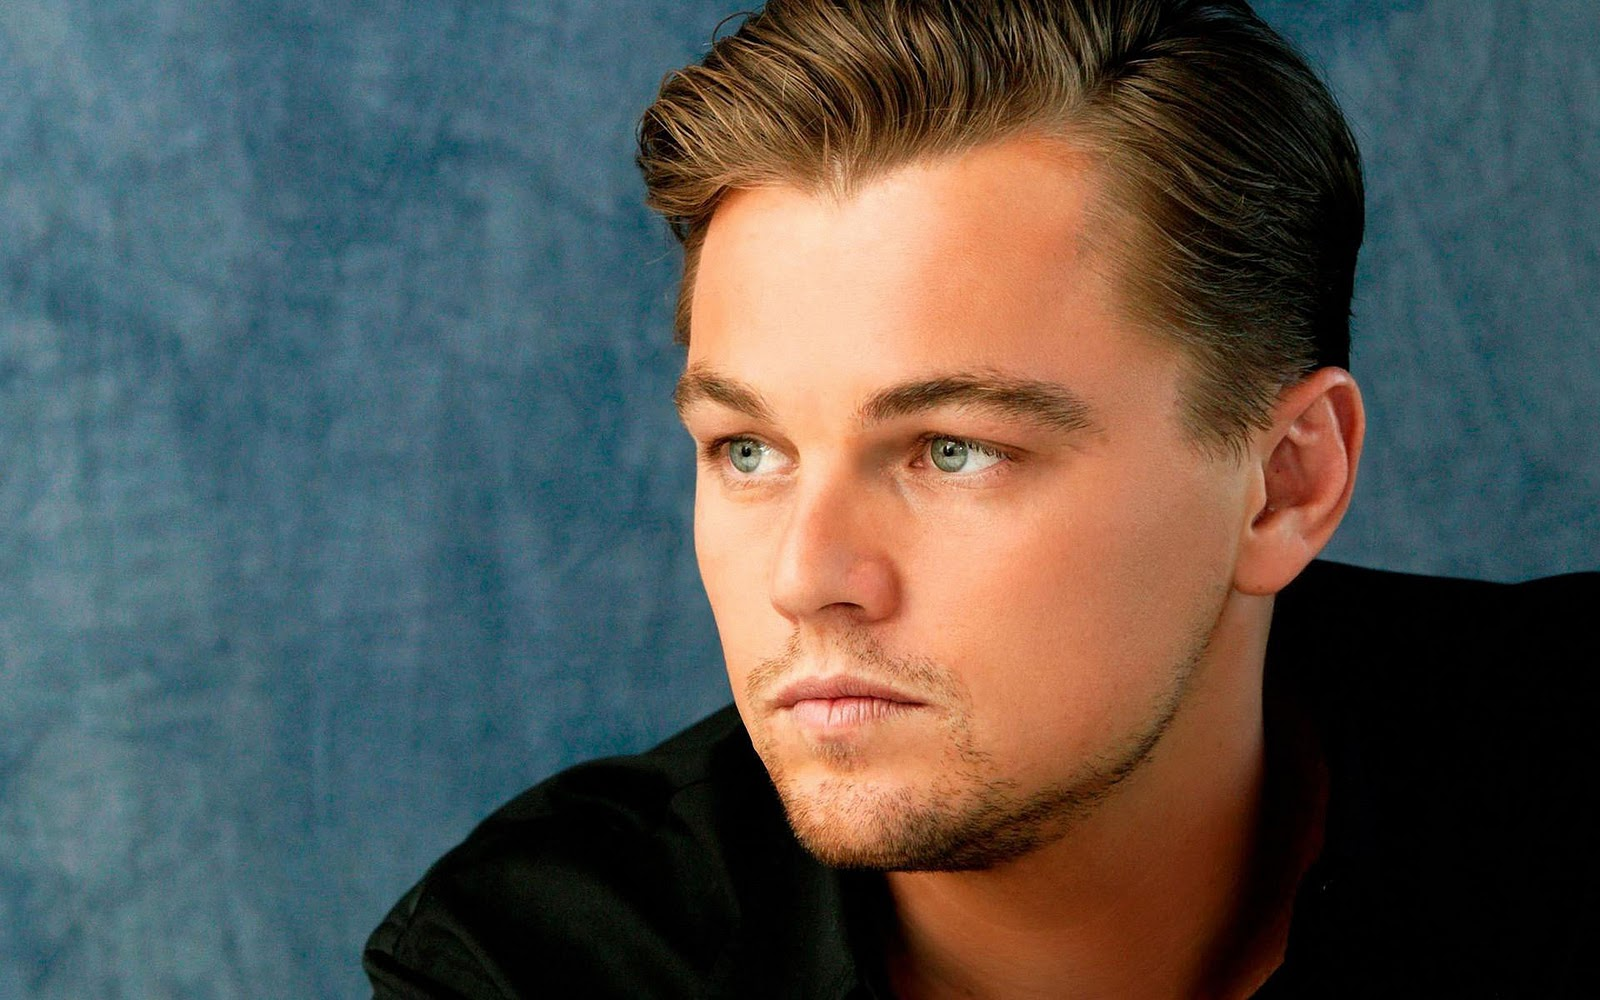 http://1.bp.blogspot.com/-0NM-i-eVpgo/TtcFPFAN3mI/AAAAAAAAAZA/oBxwU0K2CG4/s1600/Leonardo-DiCaprio-pictures-desktop-Wallpapers-HD-photo-images-1.jpg